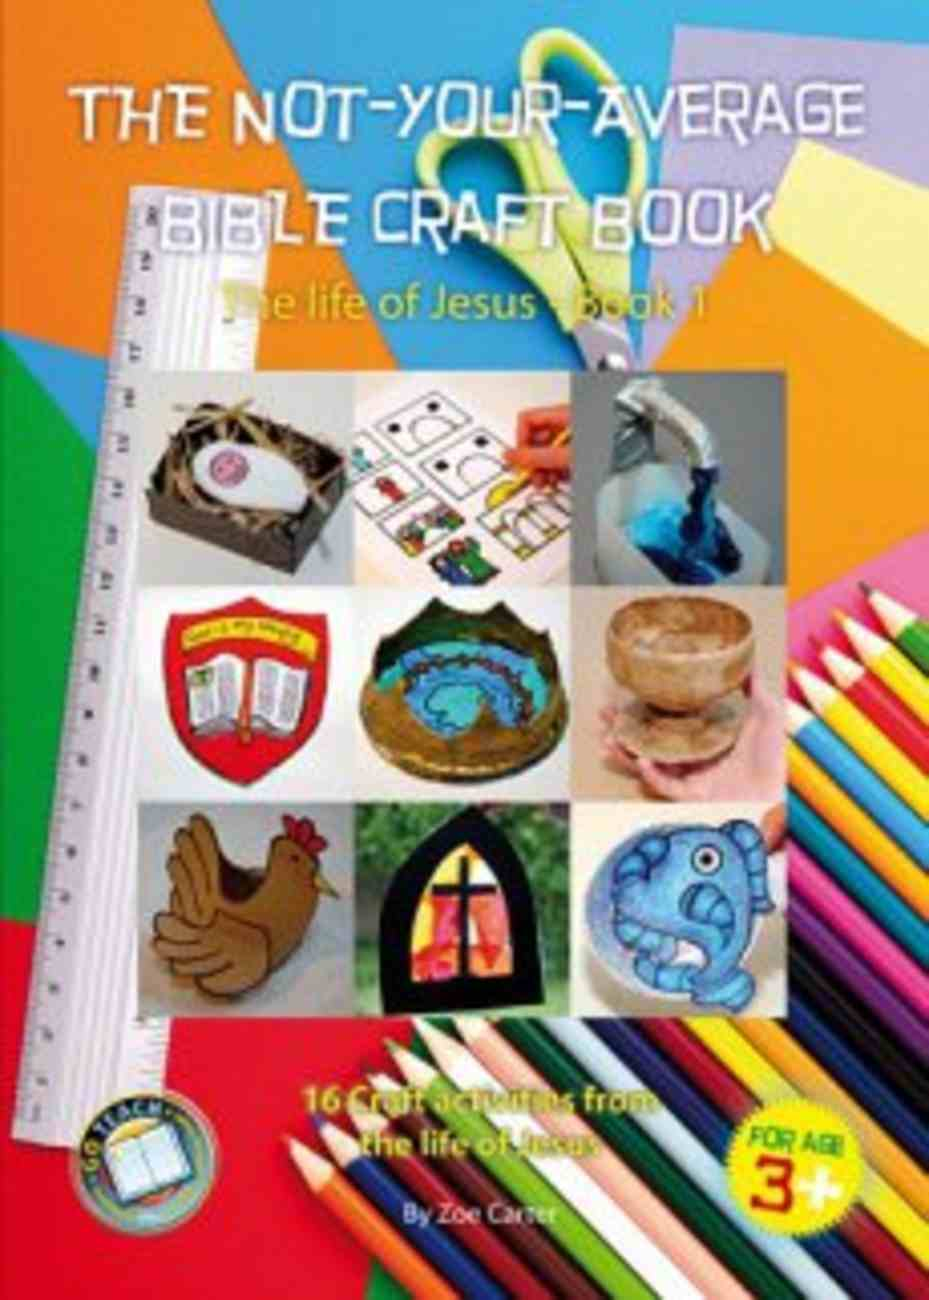 The Not-Your-Average Bible Craft Book (Book 1) Spiral